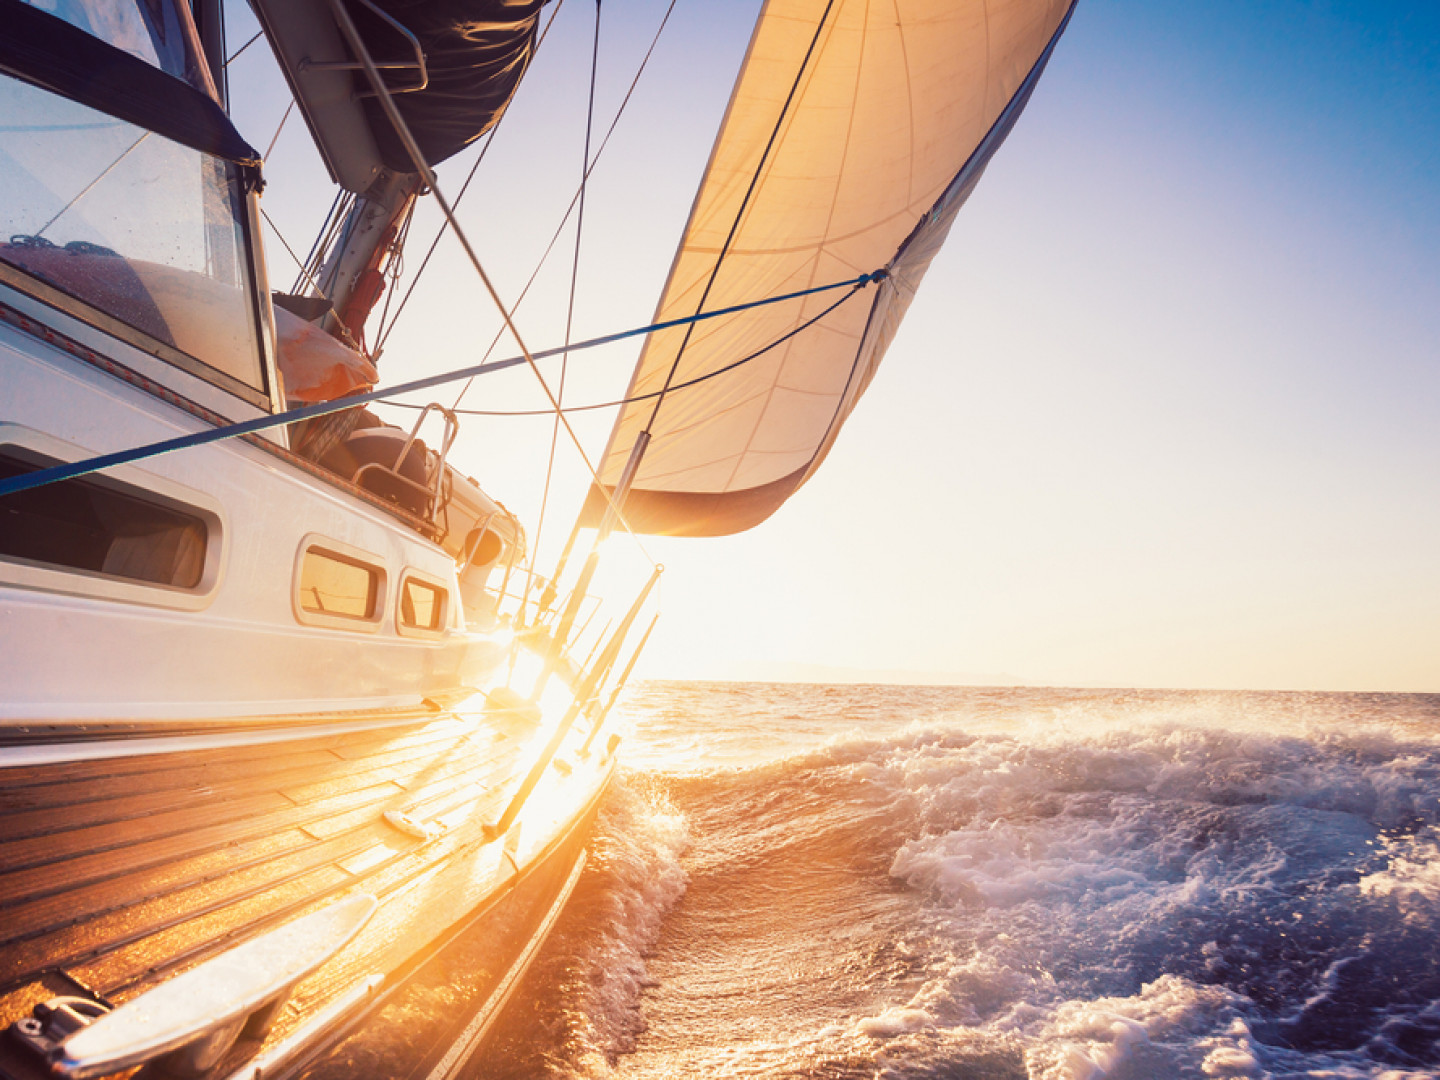 Enjoy Smooth Sailing When You're Covered by Boat Insurance